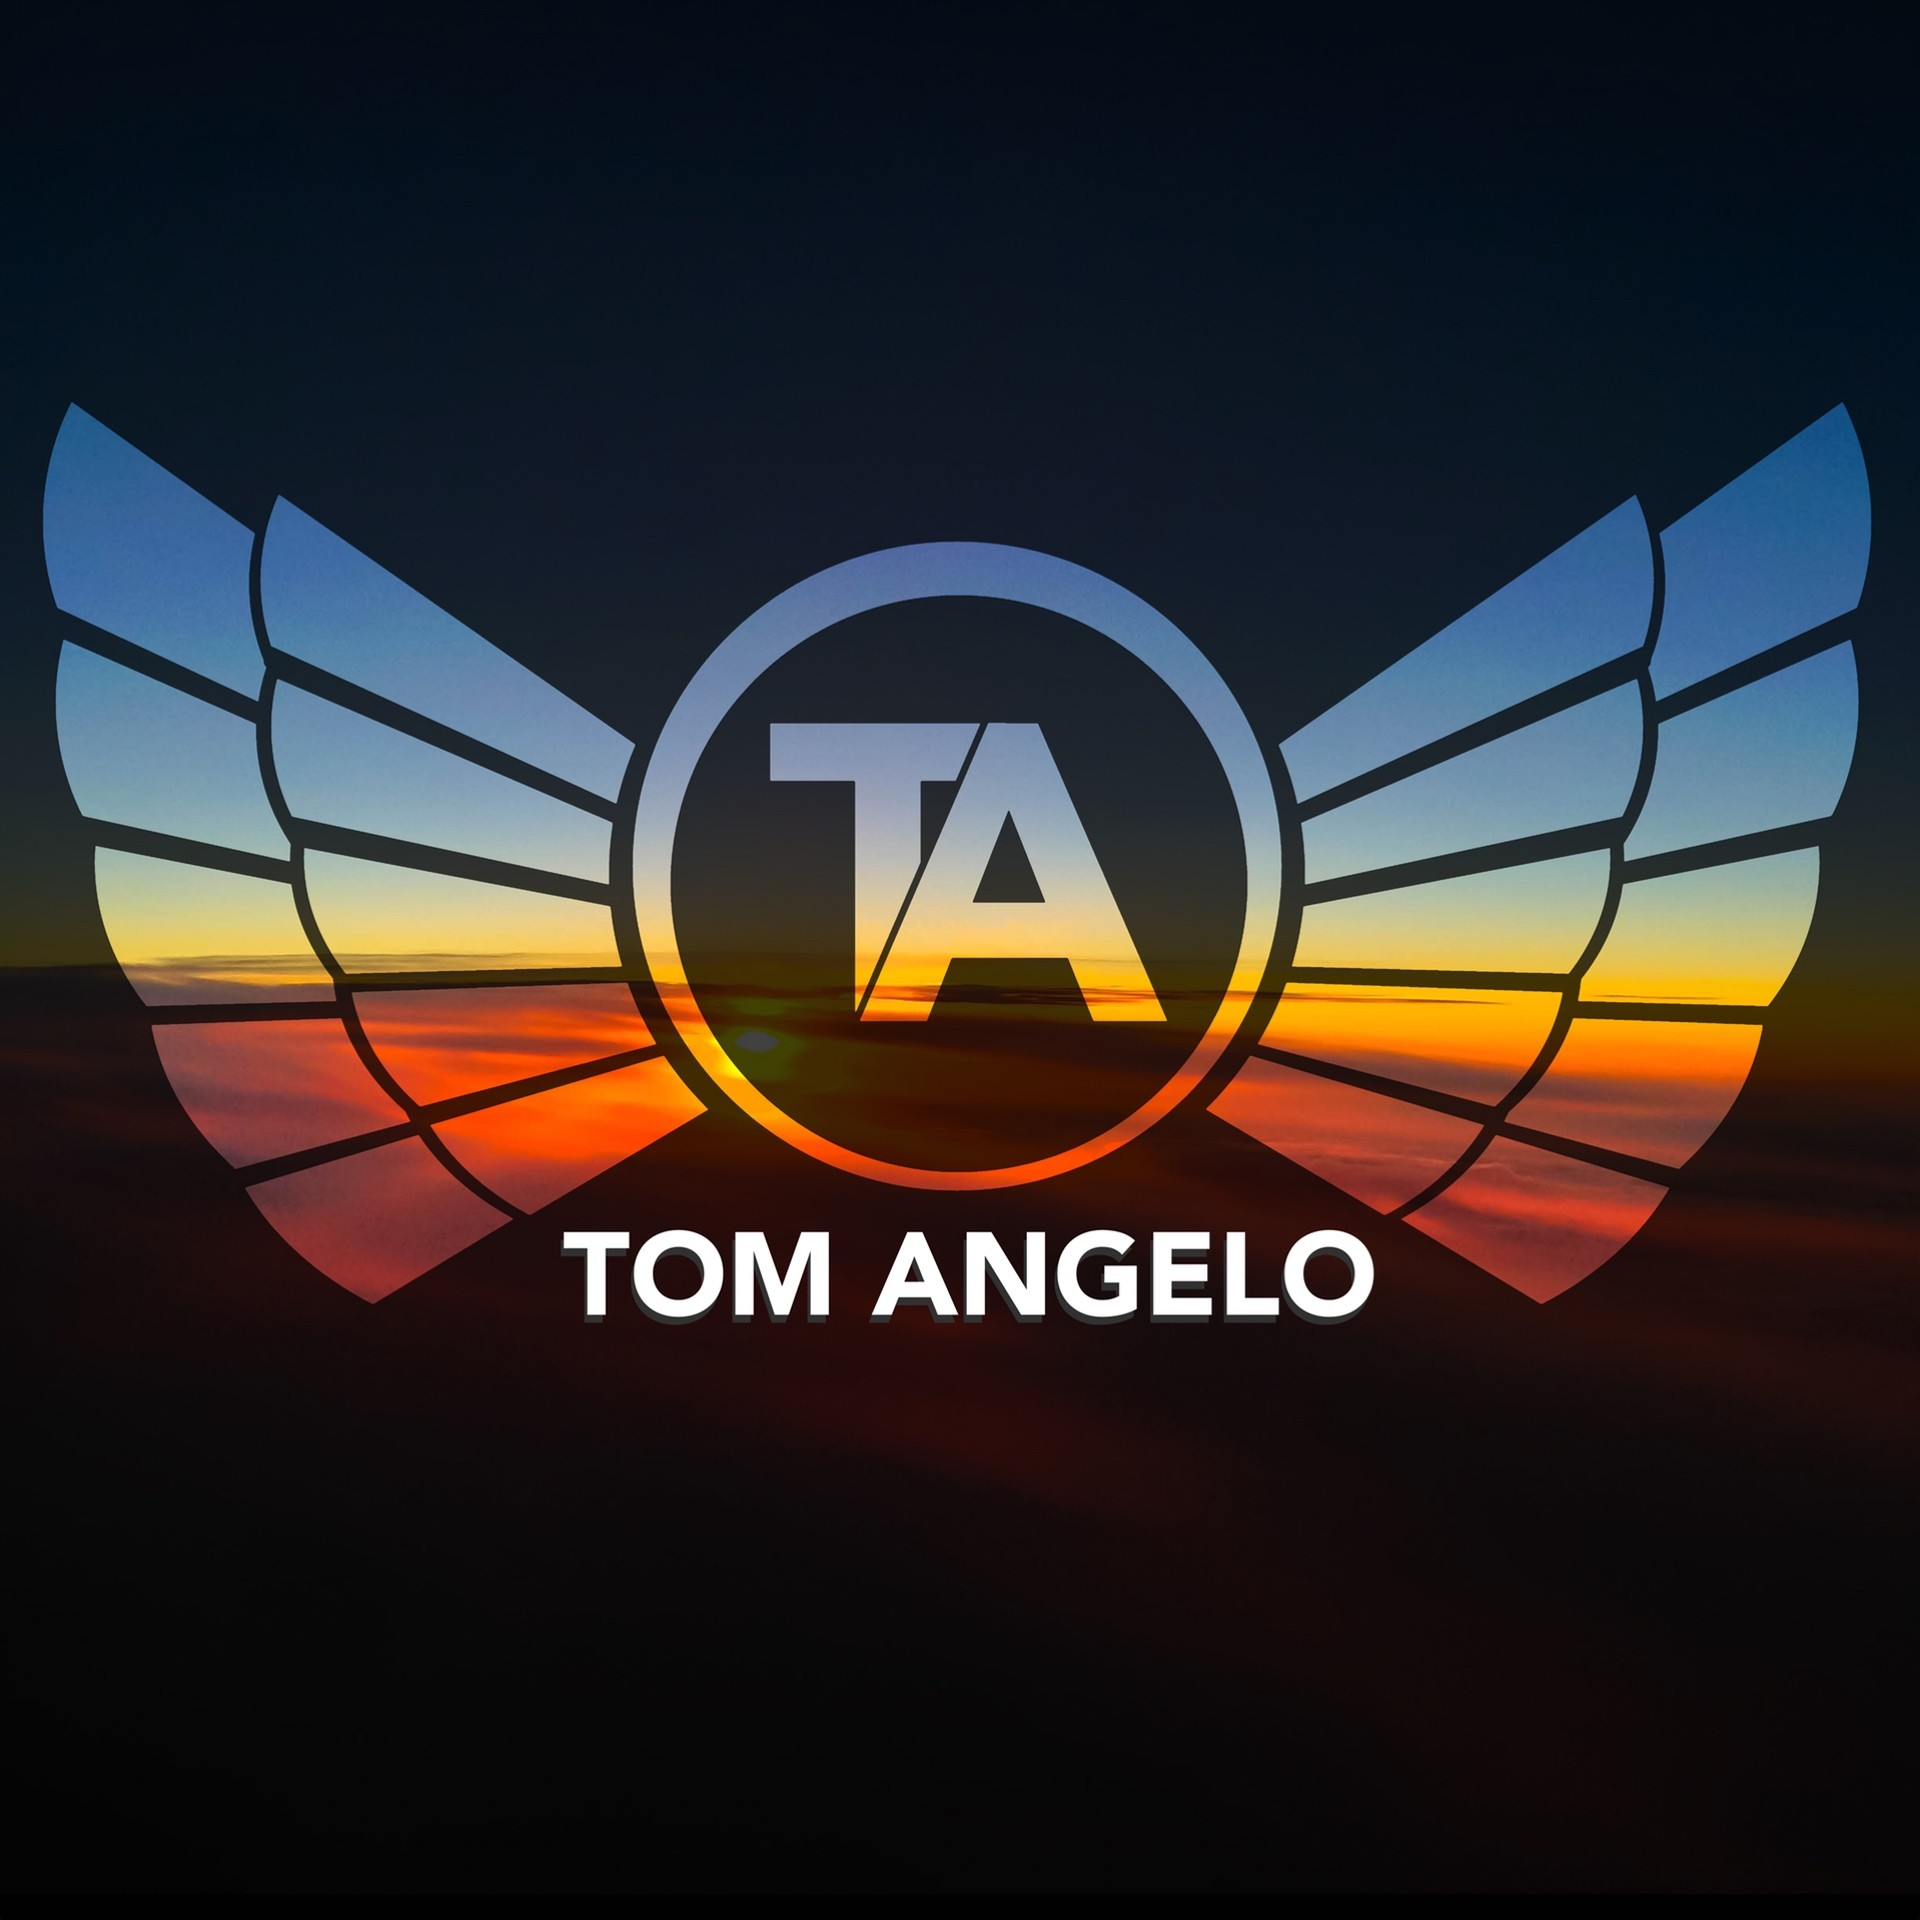 Tom Angelo